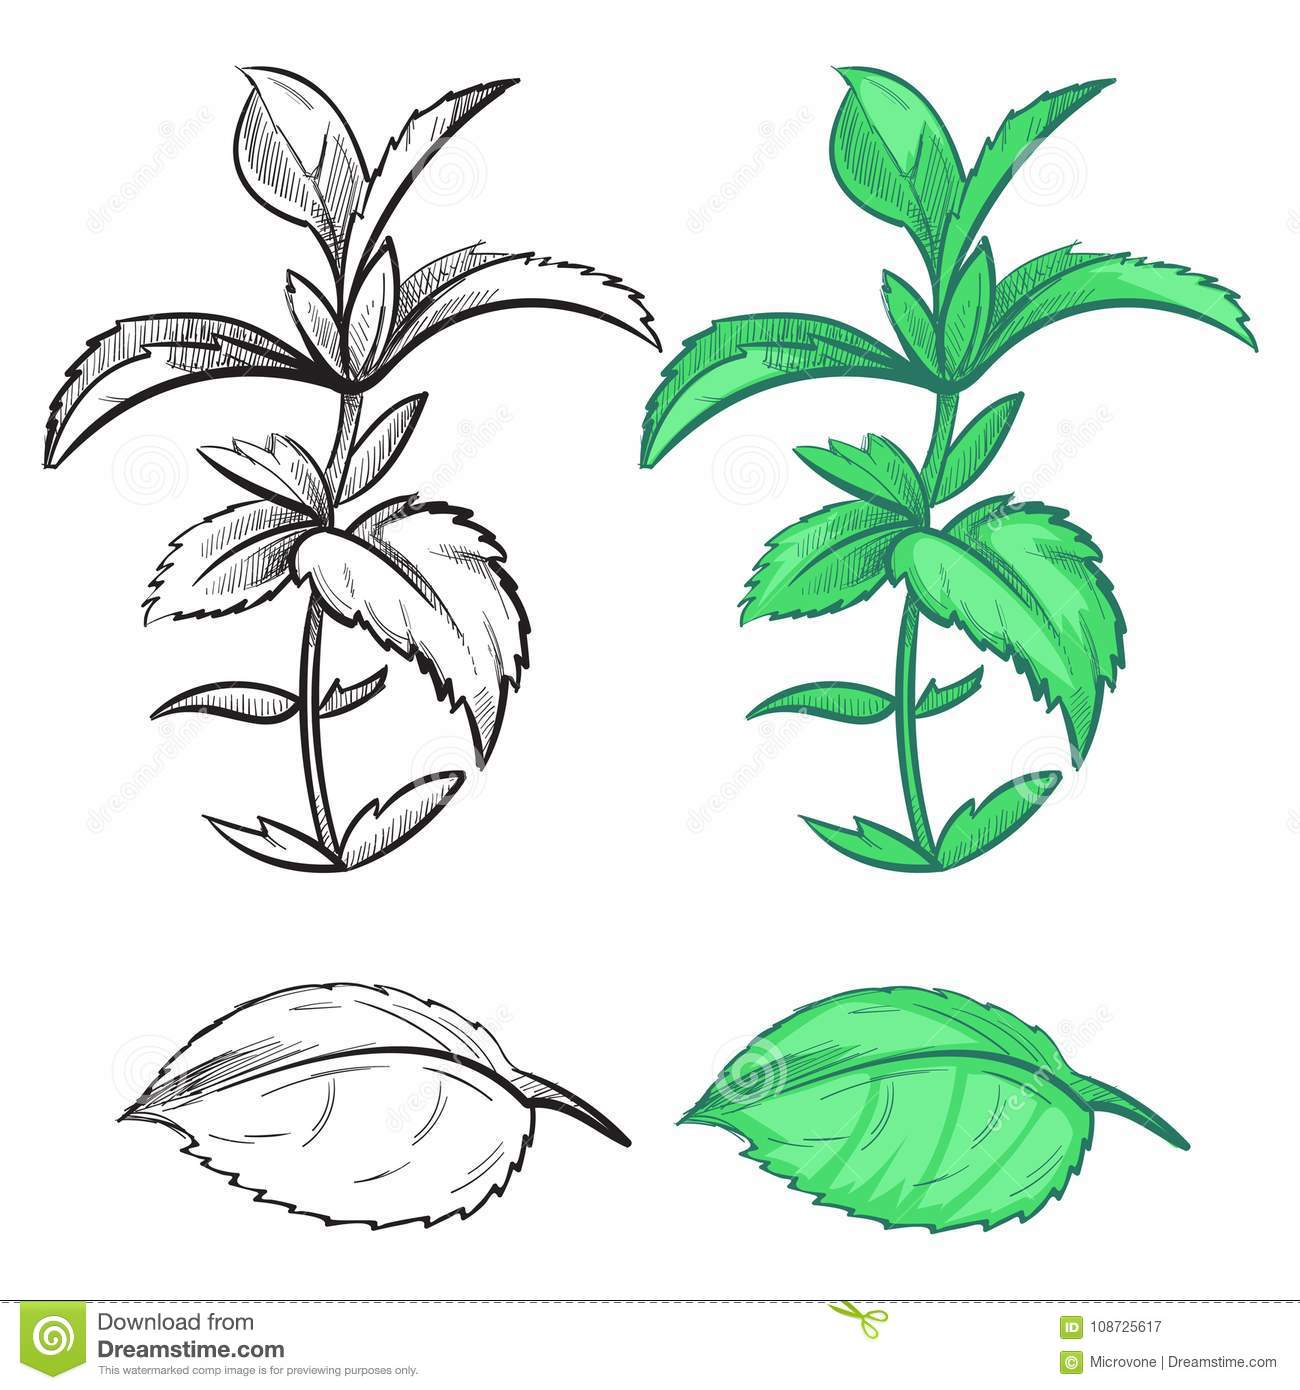 coloring hand drawn mint plant leaf colorful samples coloring hand drawn mint plant leaf colorful samples herb